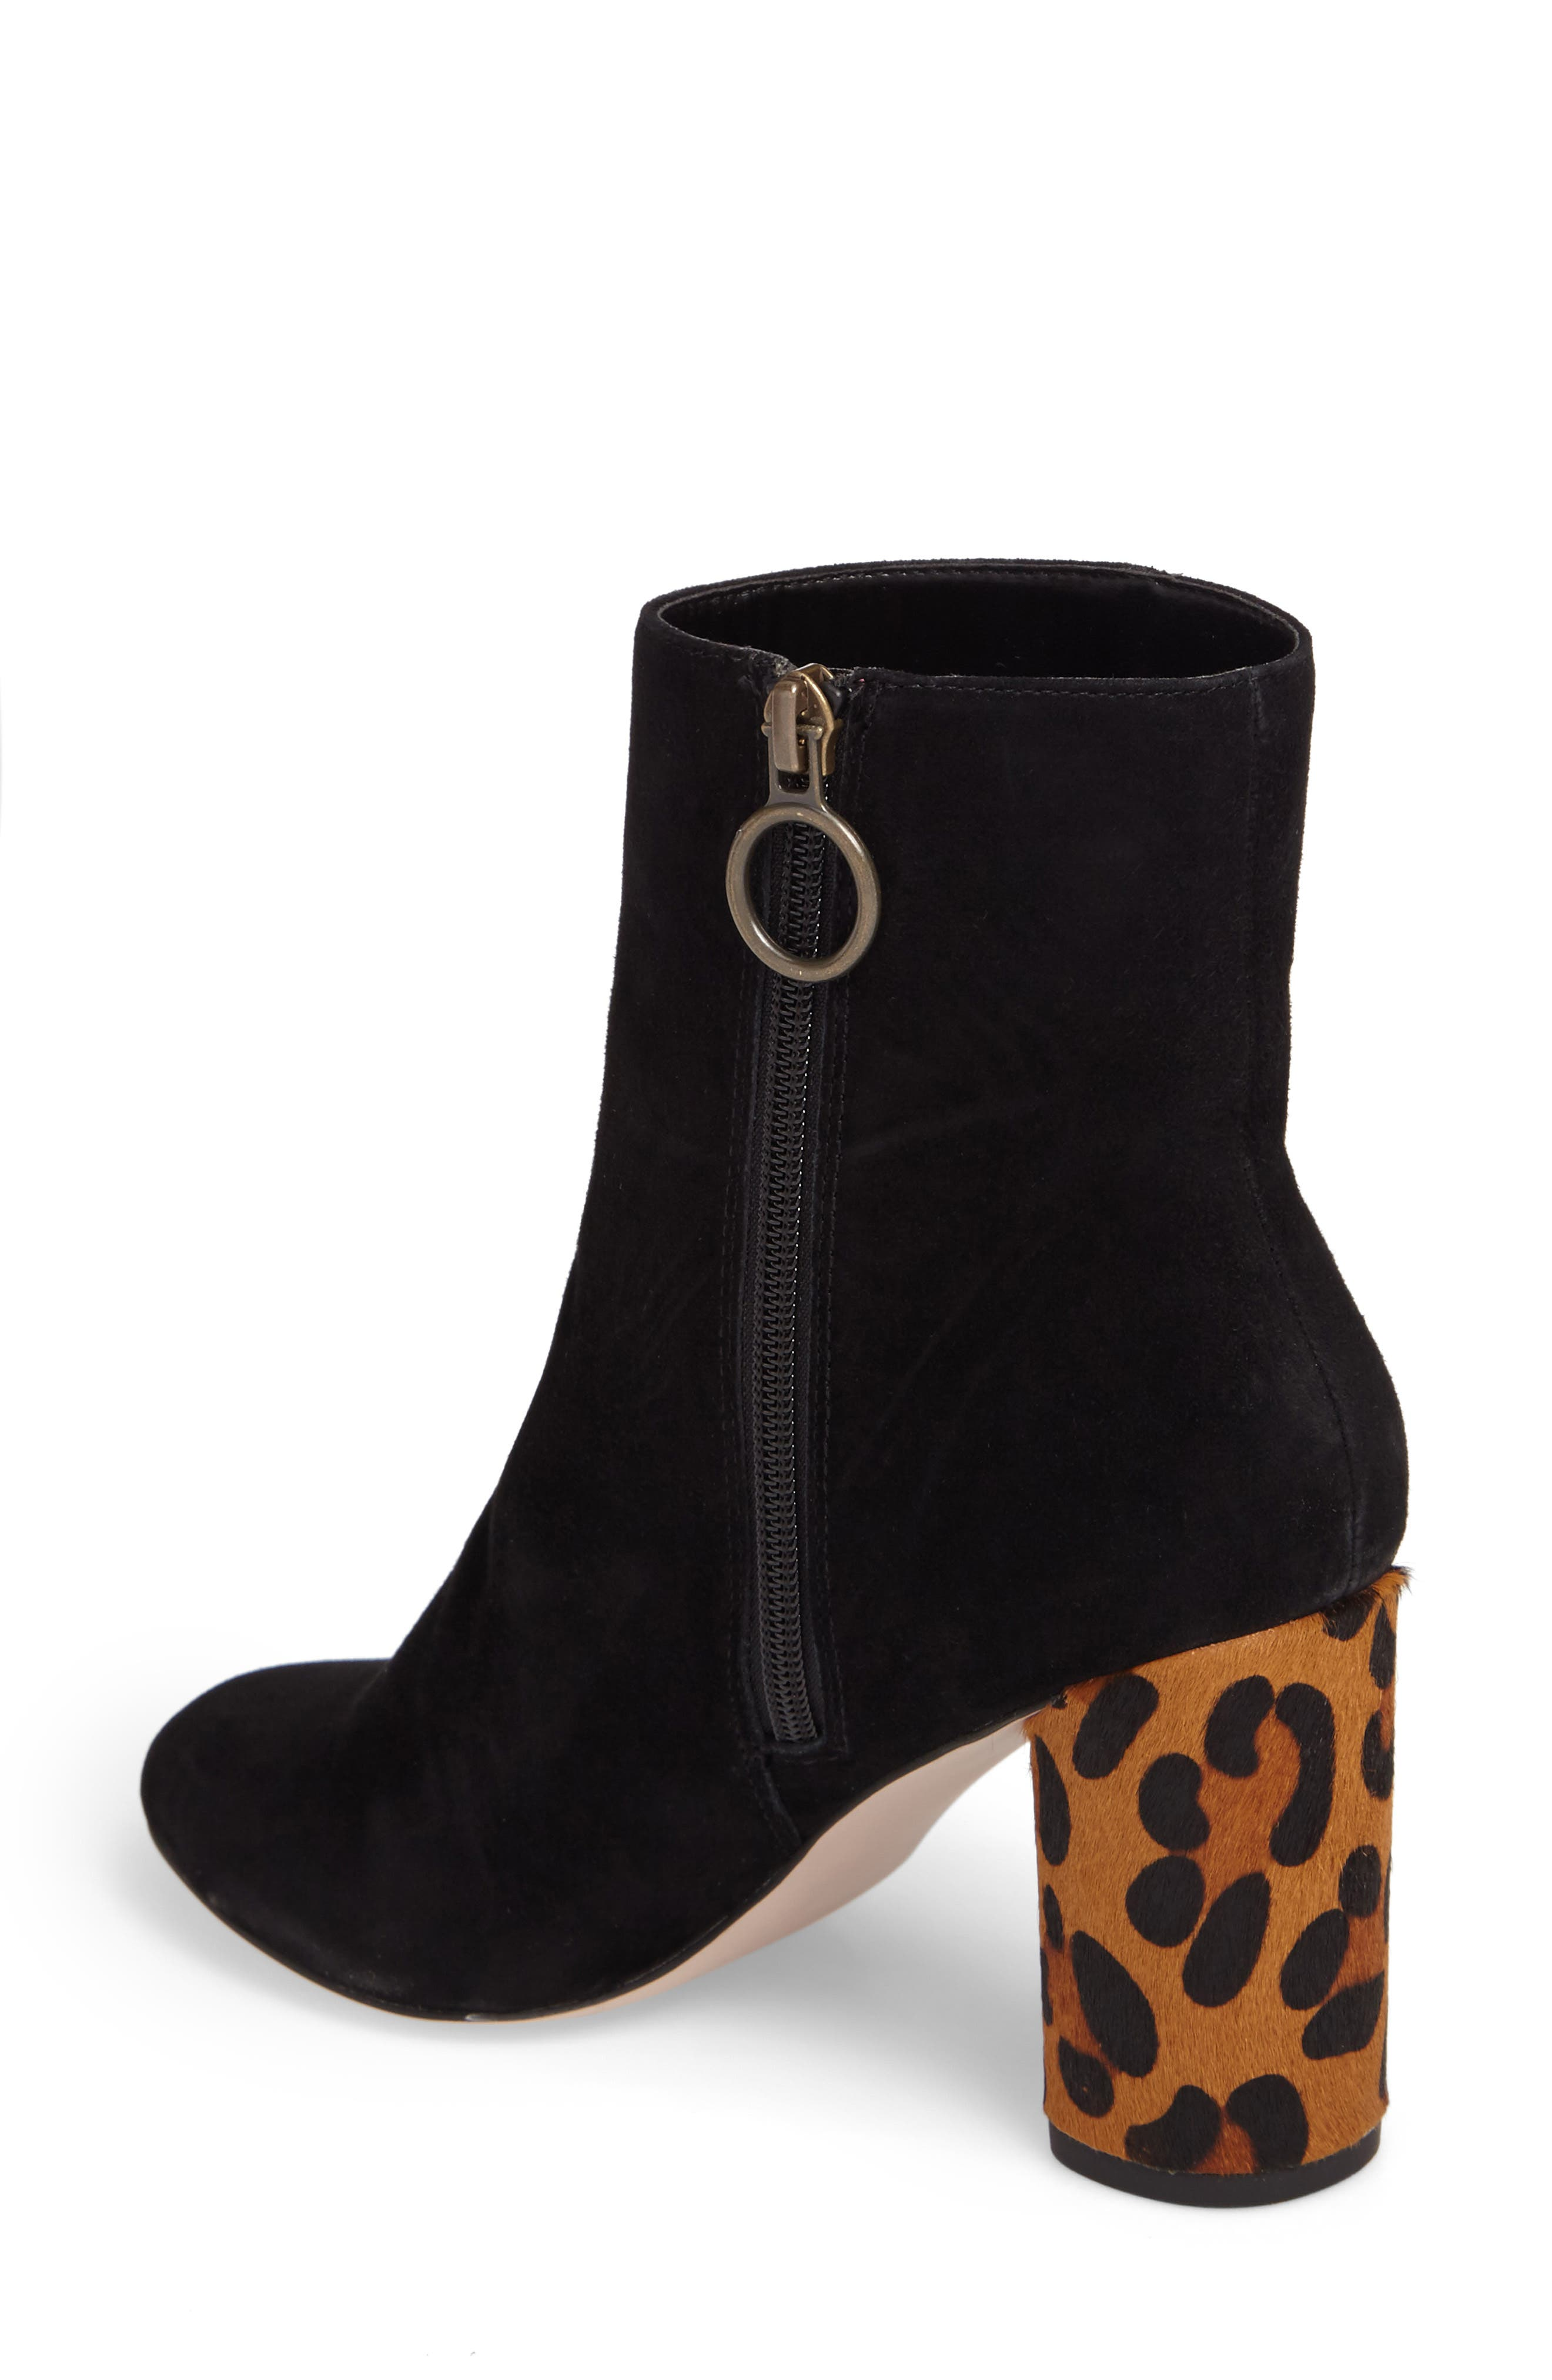 Mulholland Embroidered Boot,                             Alternate thumbnail 2, color,                             Black With Leopard Heel